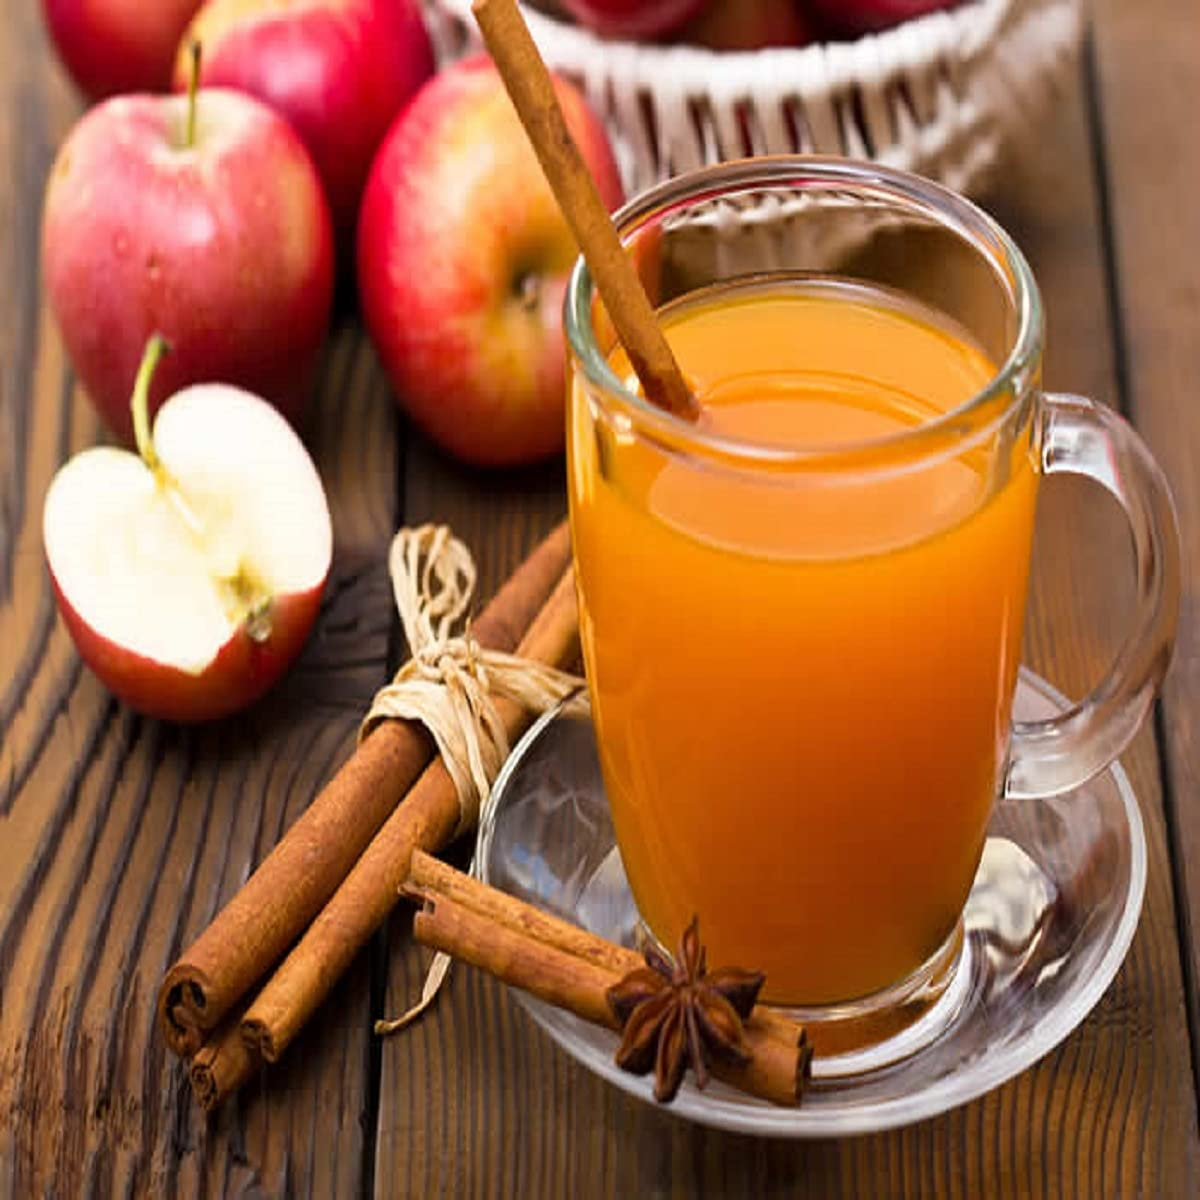 Hot Apple Cider 8 LB Bottle for Soap Detroit Mall Super-cheap Candle Making Ta